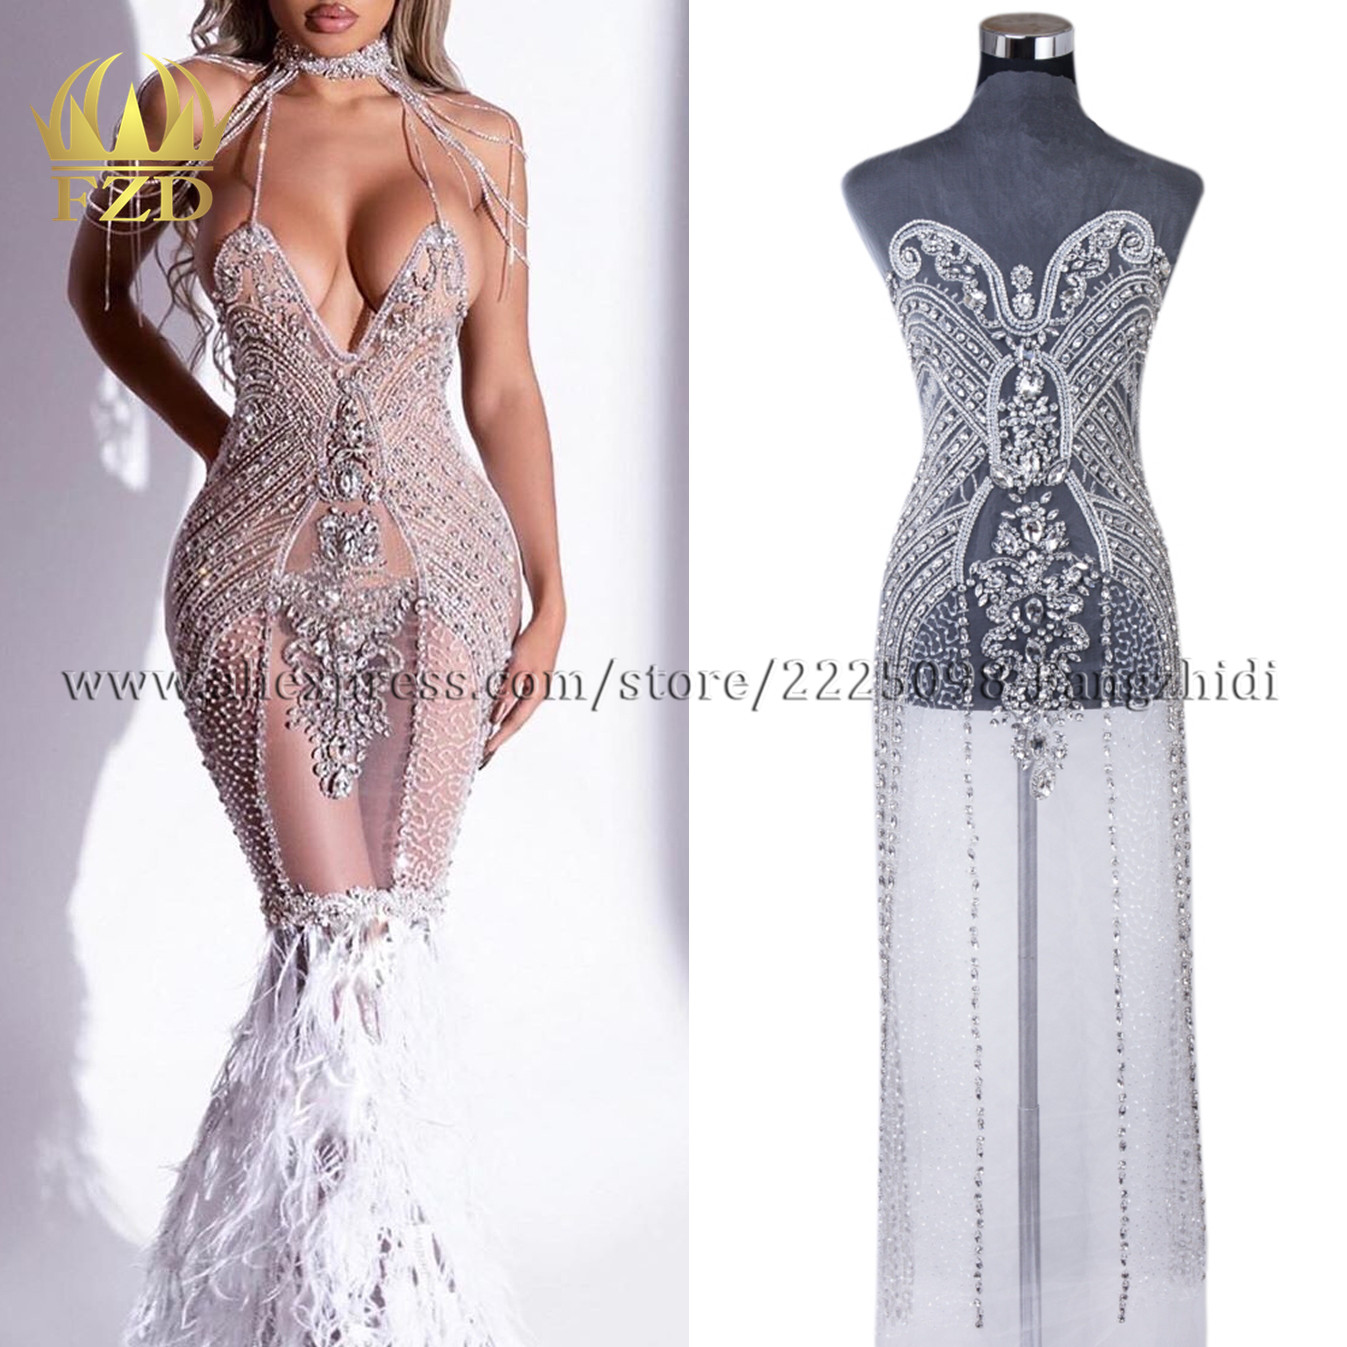 FZD 1 piece New arrival Elegant silver Handmade Bead  Apparel Fashion crystal rhinestone V-neck Design Wedding Dress